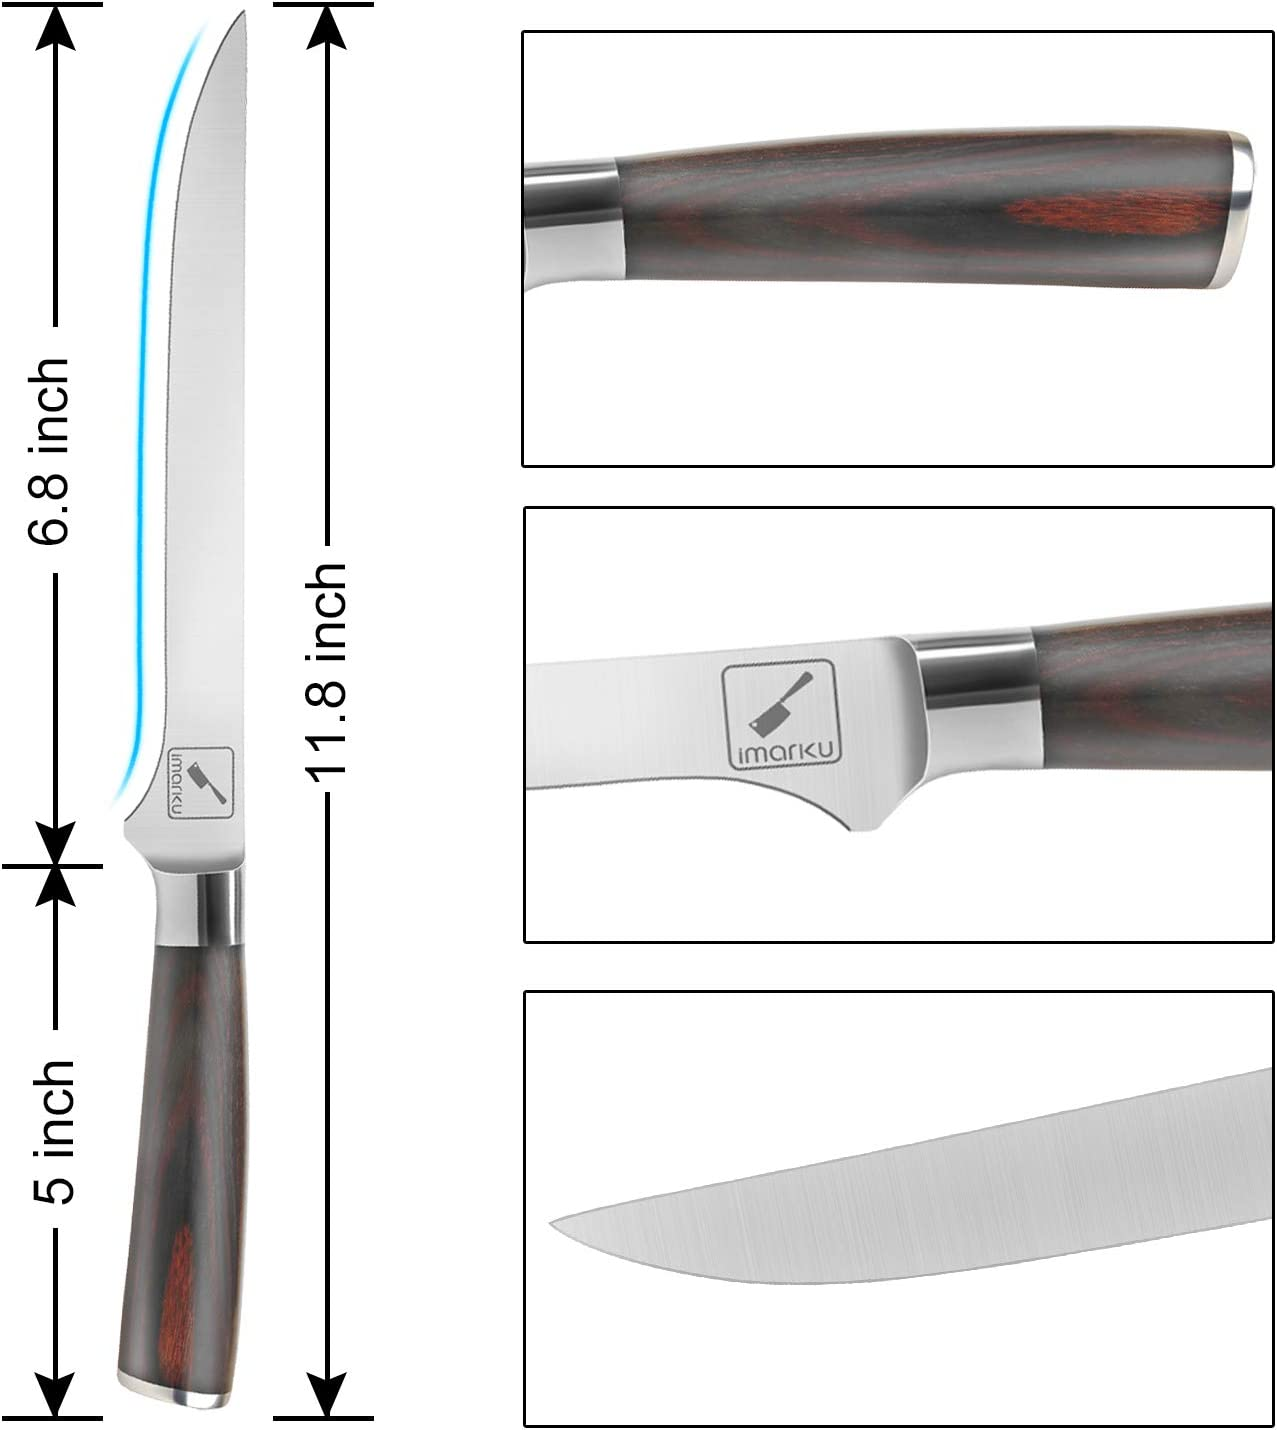 Details description of imarku Boning Knife